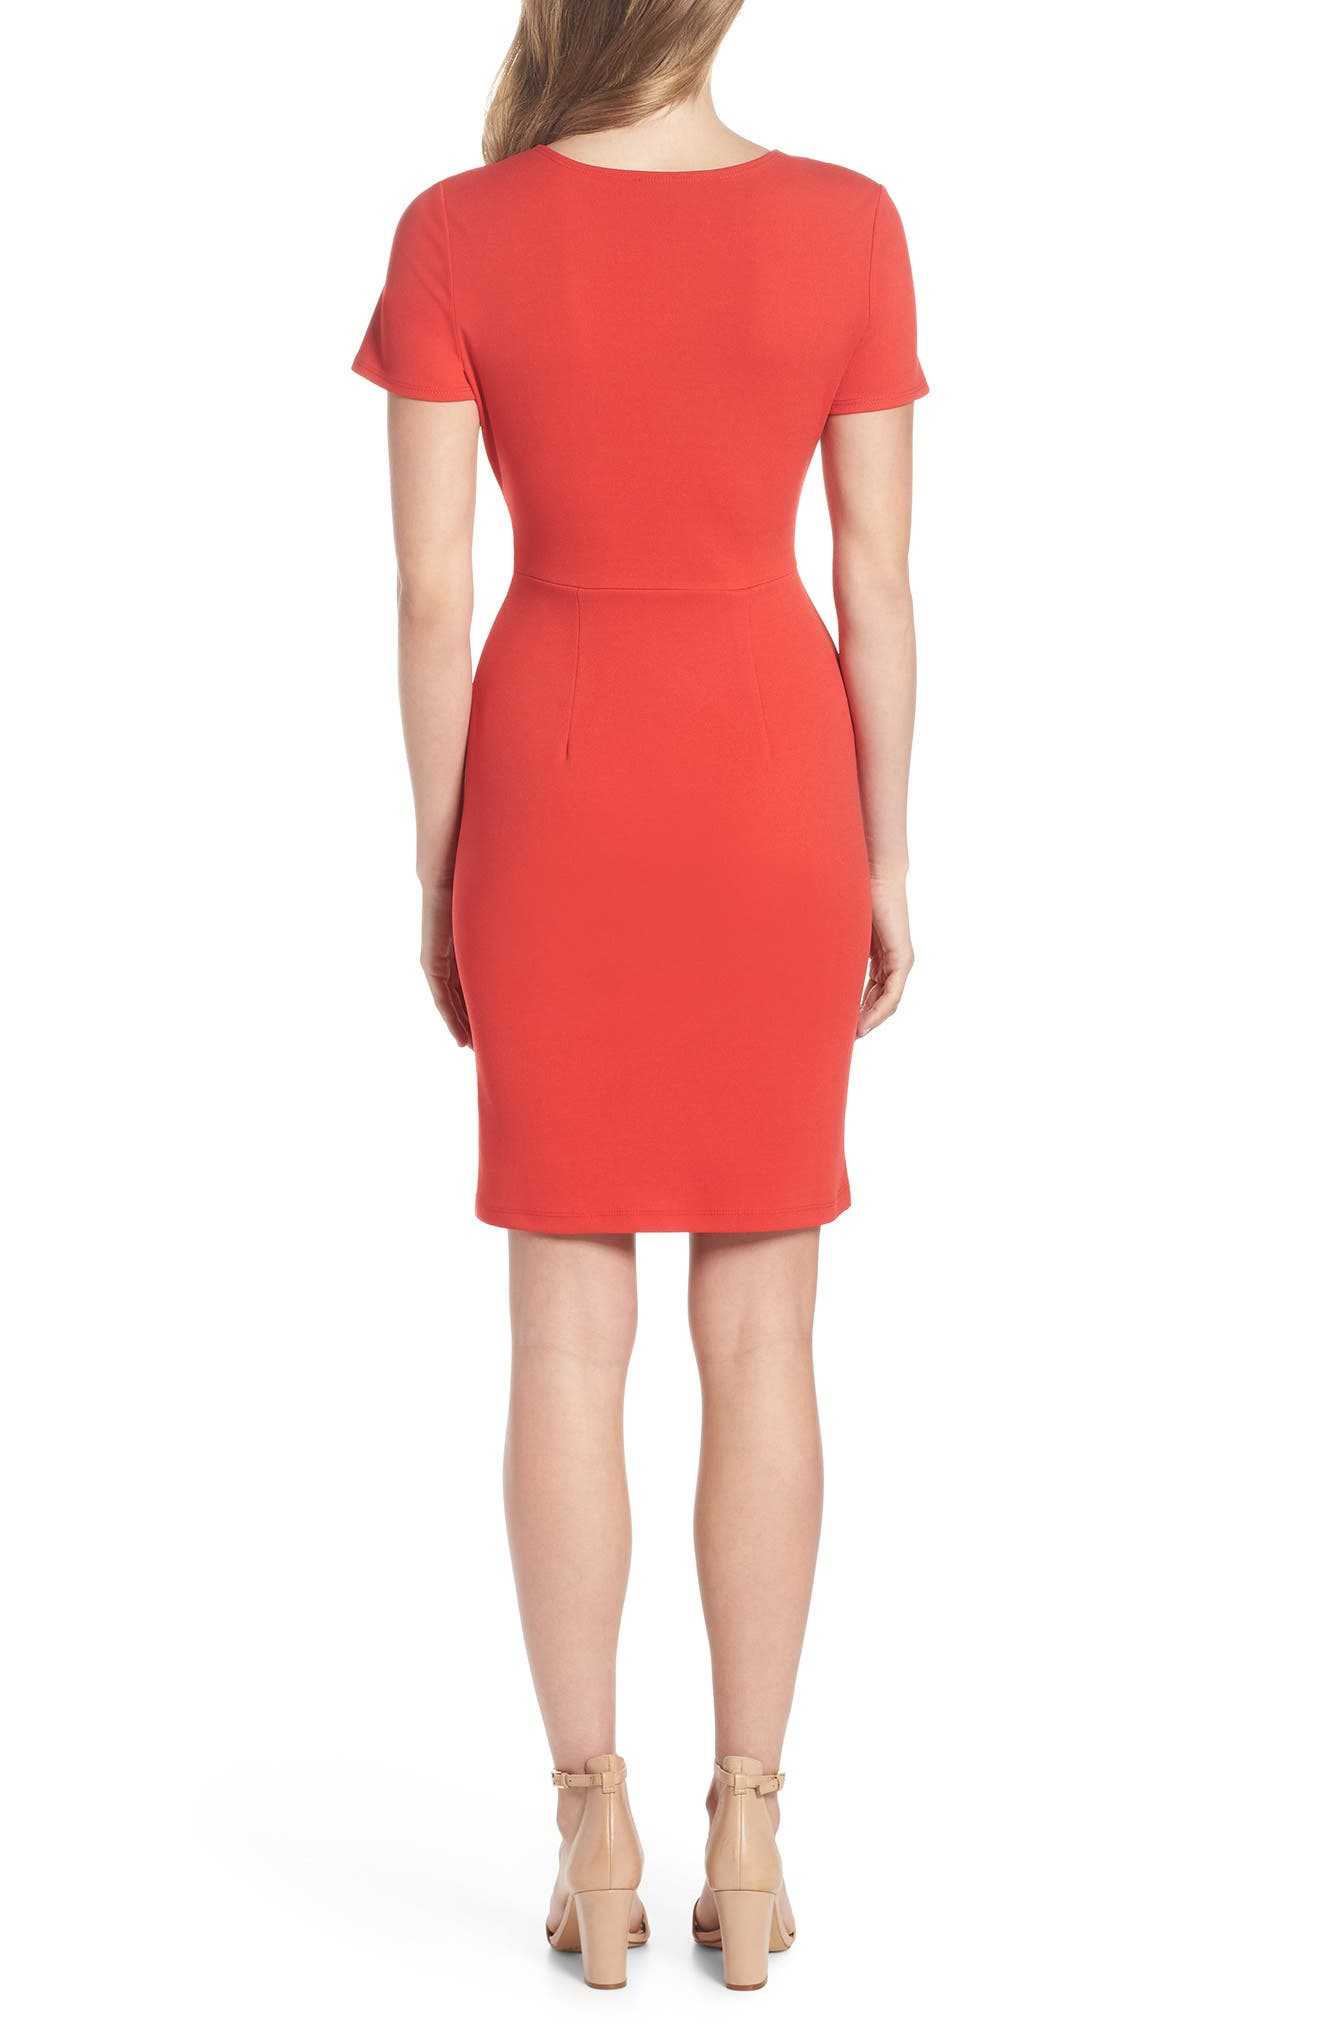 DOROTHY PERKINS,                             Tie Front Sheath Dress,                             Alternate thumbnail 2, color,                             650